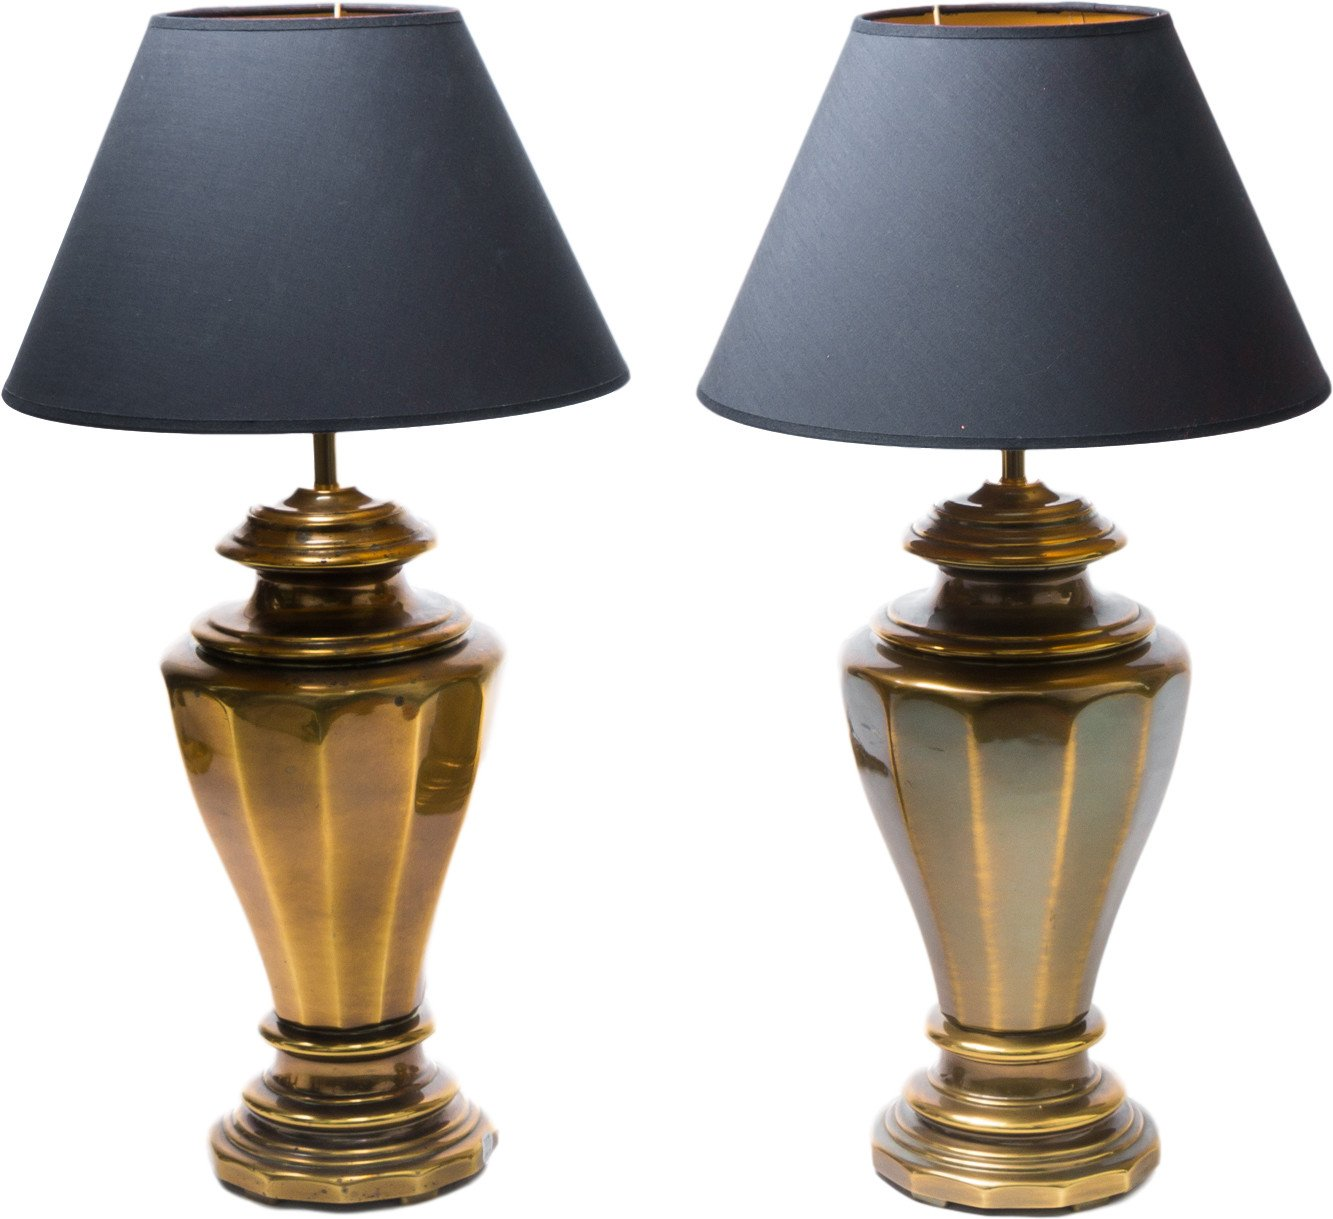 Pair of Table Lamps, 1970s